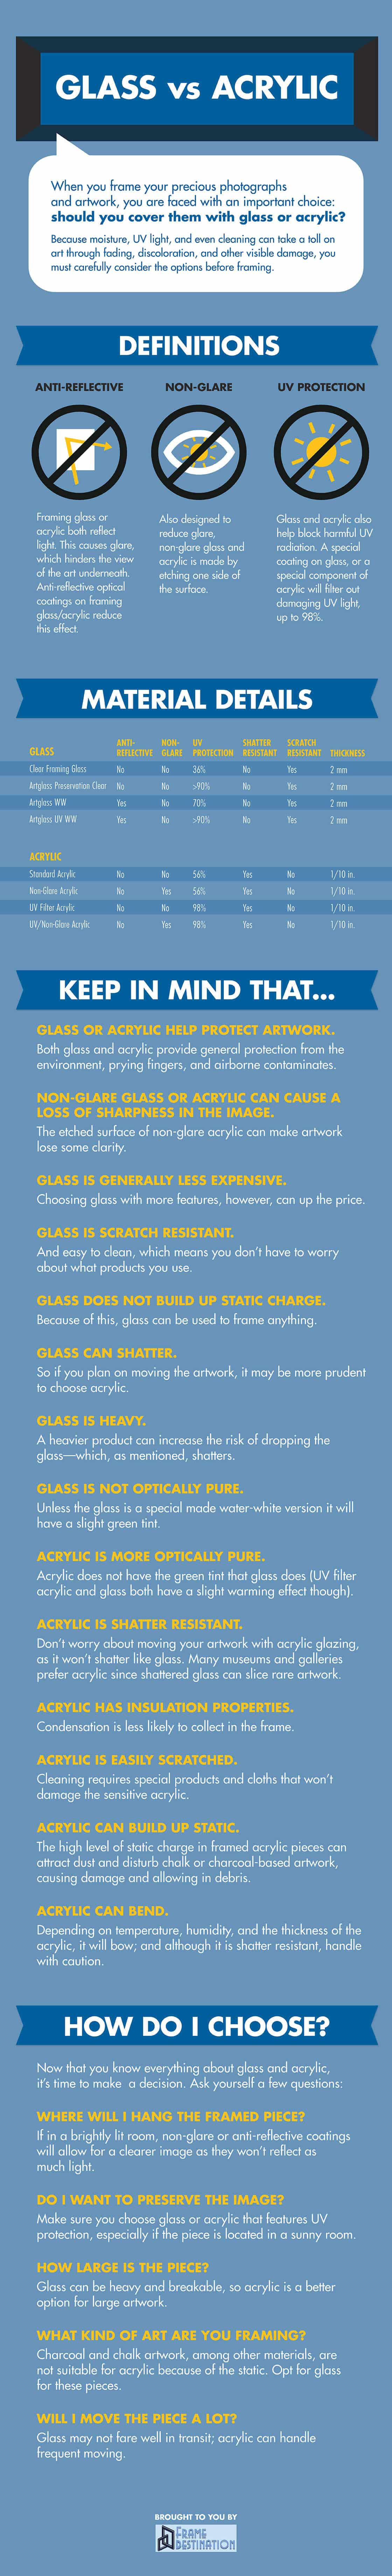 Glass vs Acrylic Blog Infographic